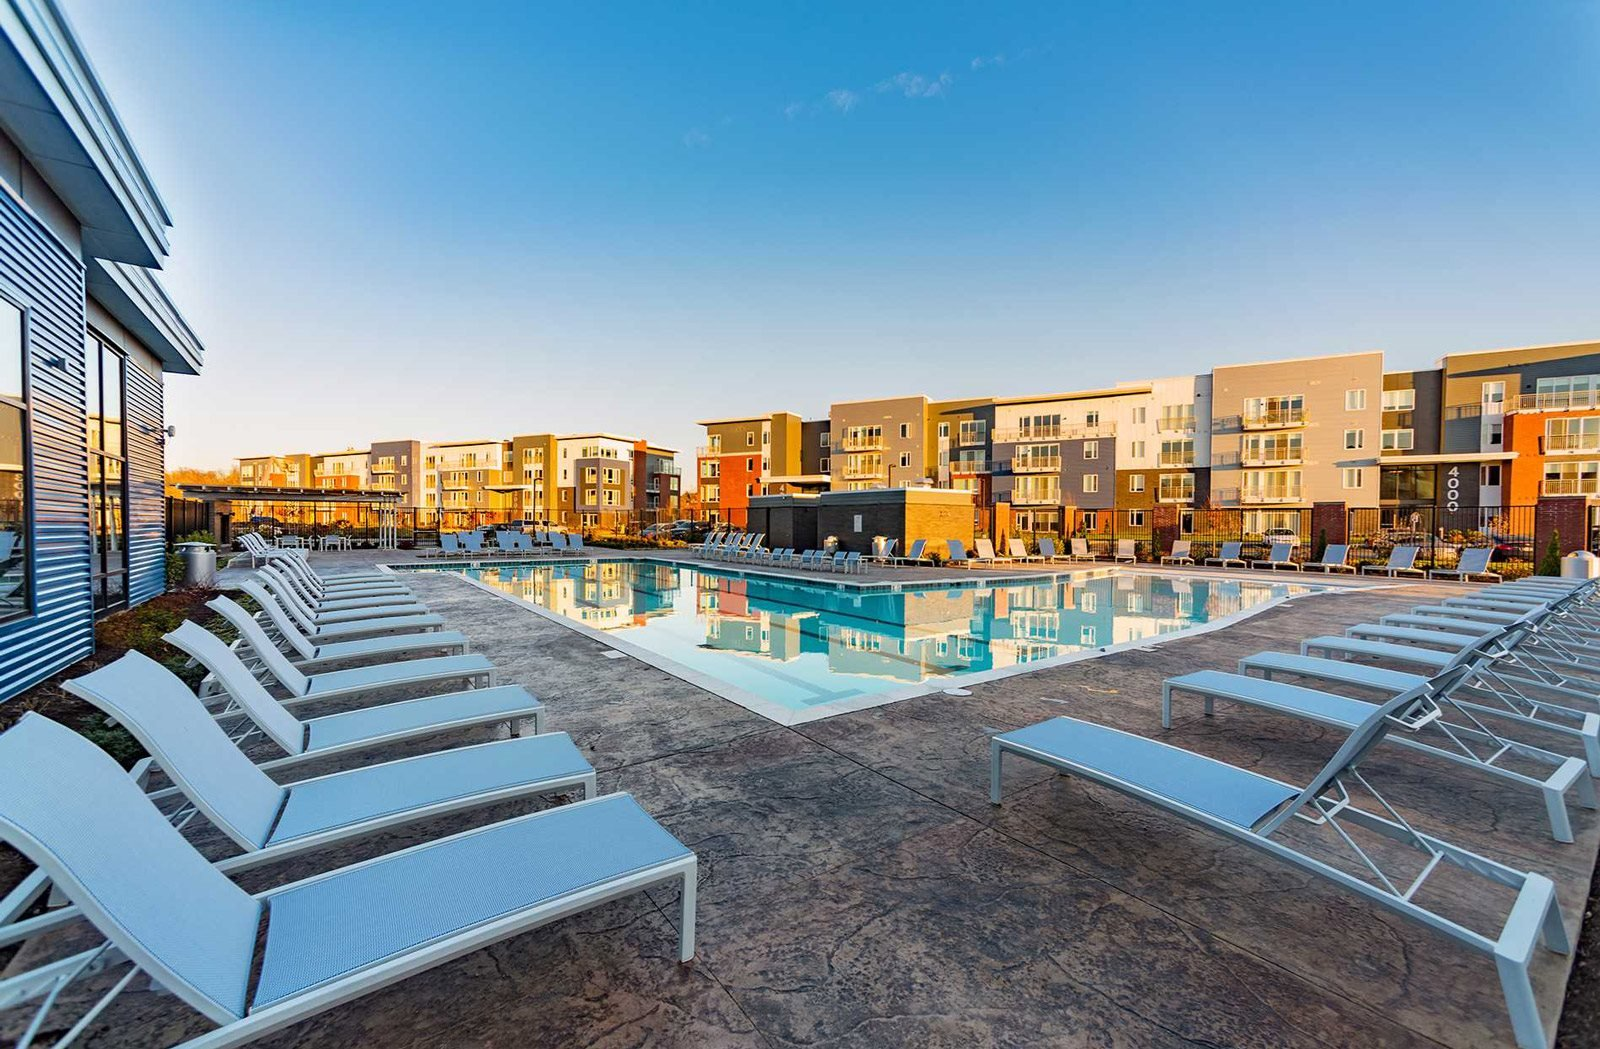 The Ridge at Robinson Apartments Offers Pool Side Relaxing Area With Easy Chairs